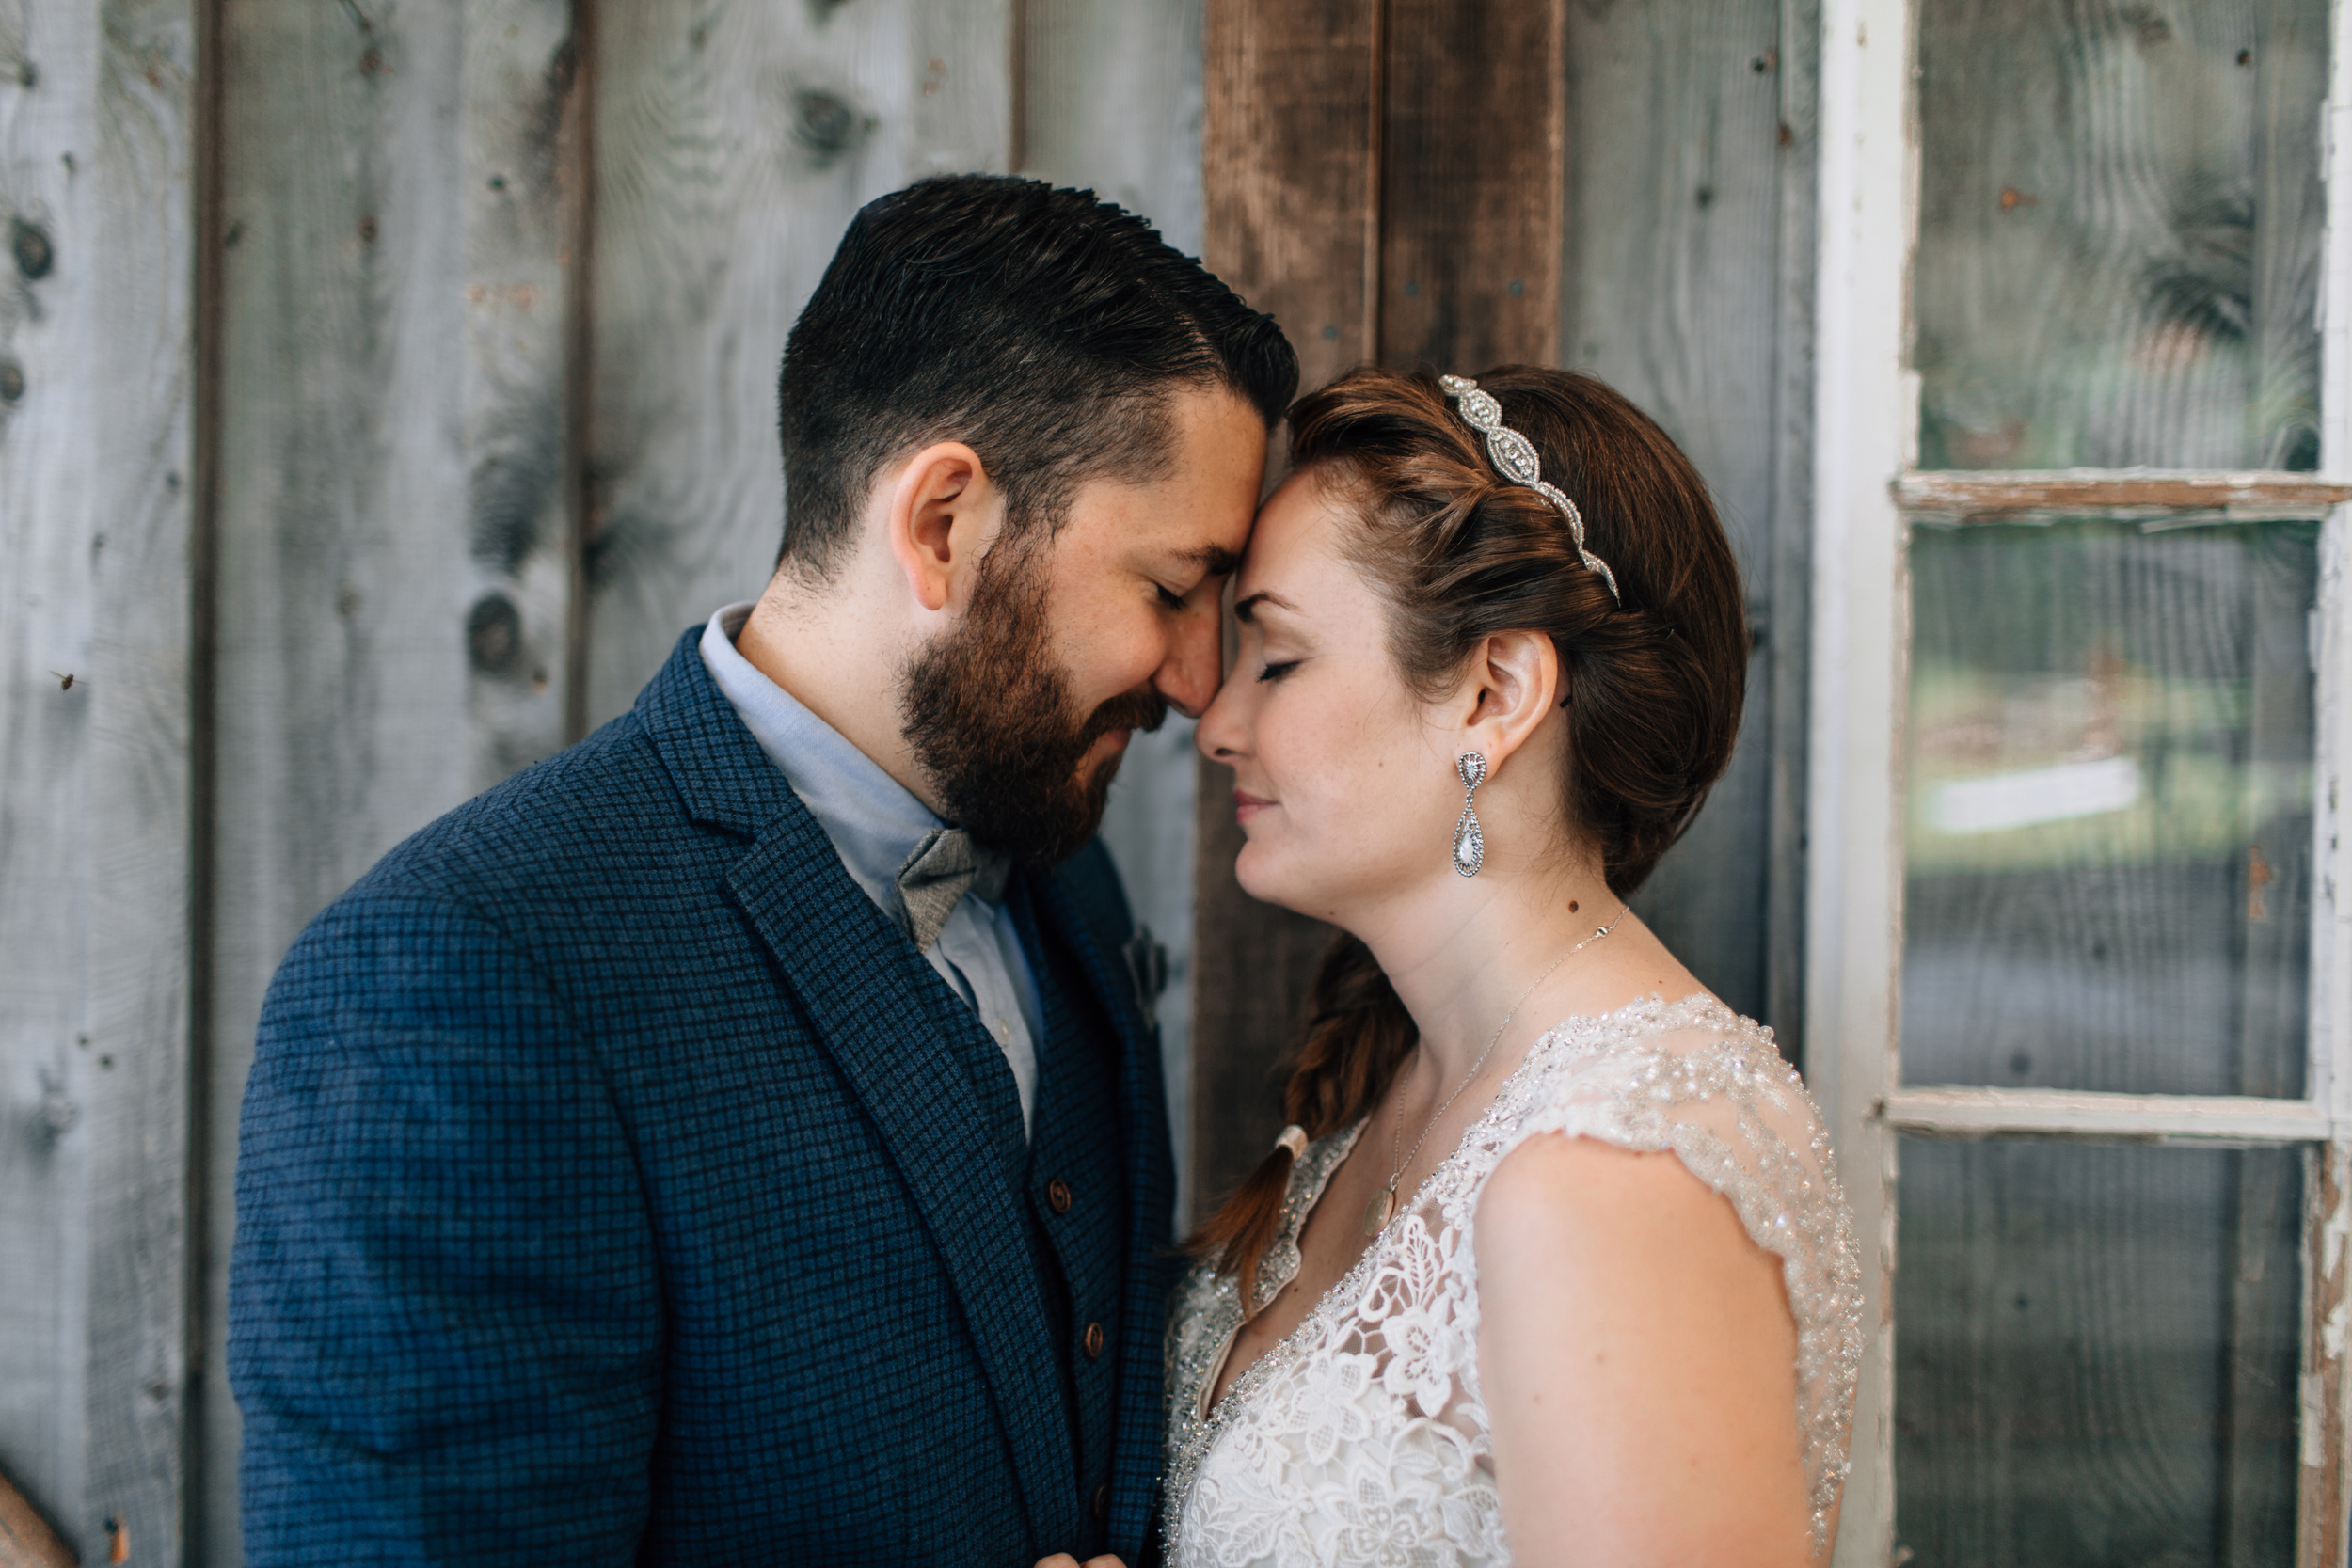 KELLIandBRADweddingJUNE2015 - portraits (12 of 142).jpg